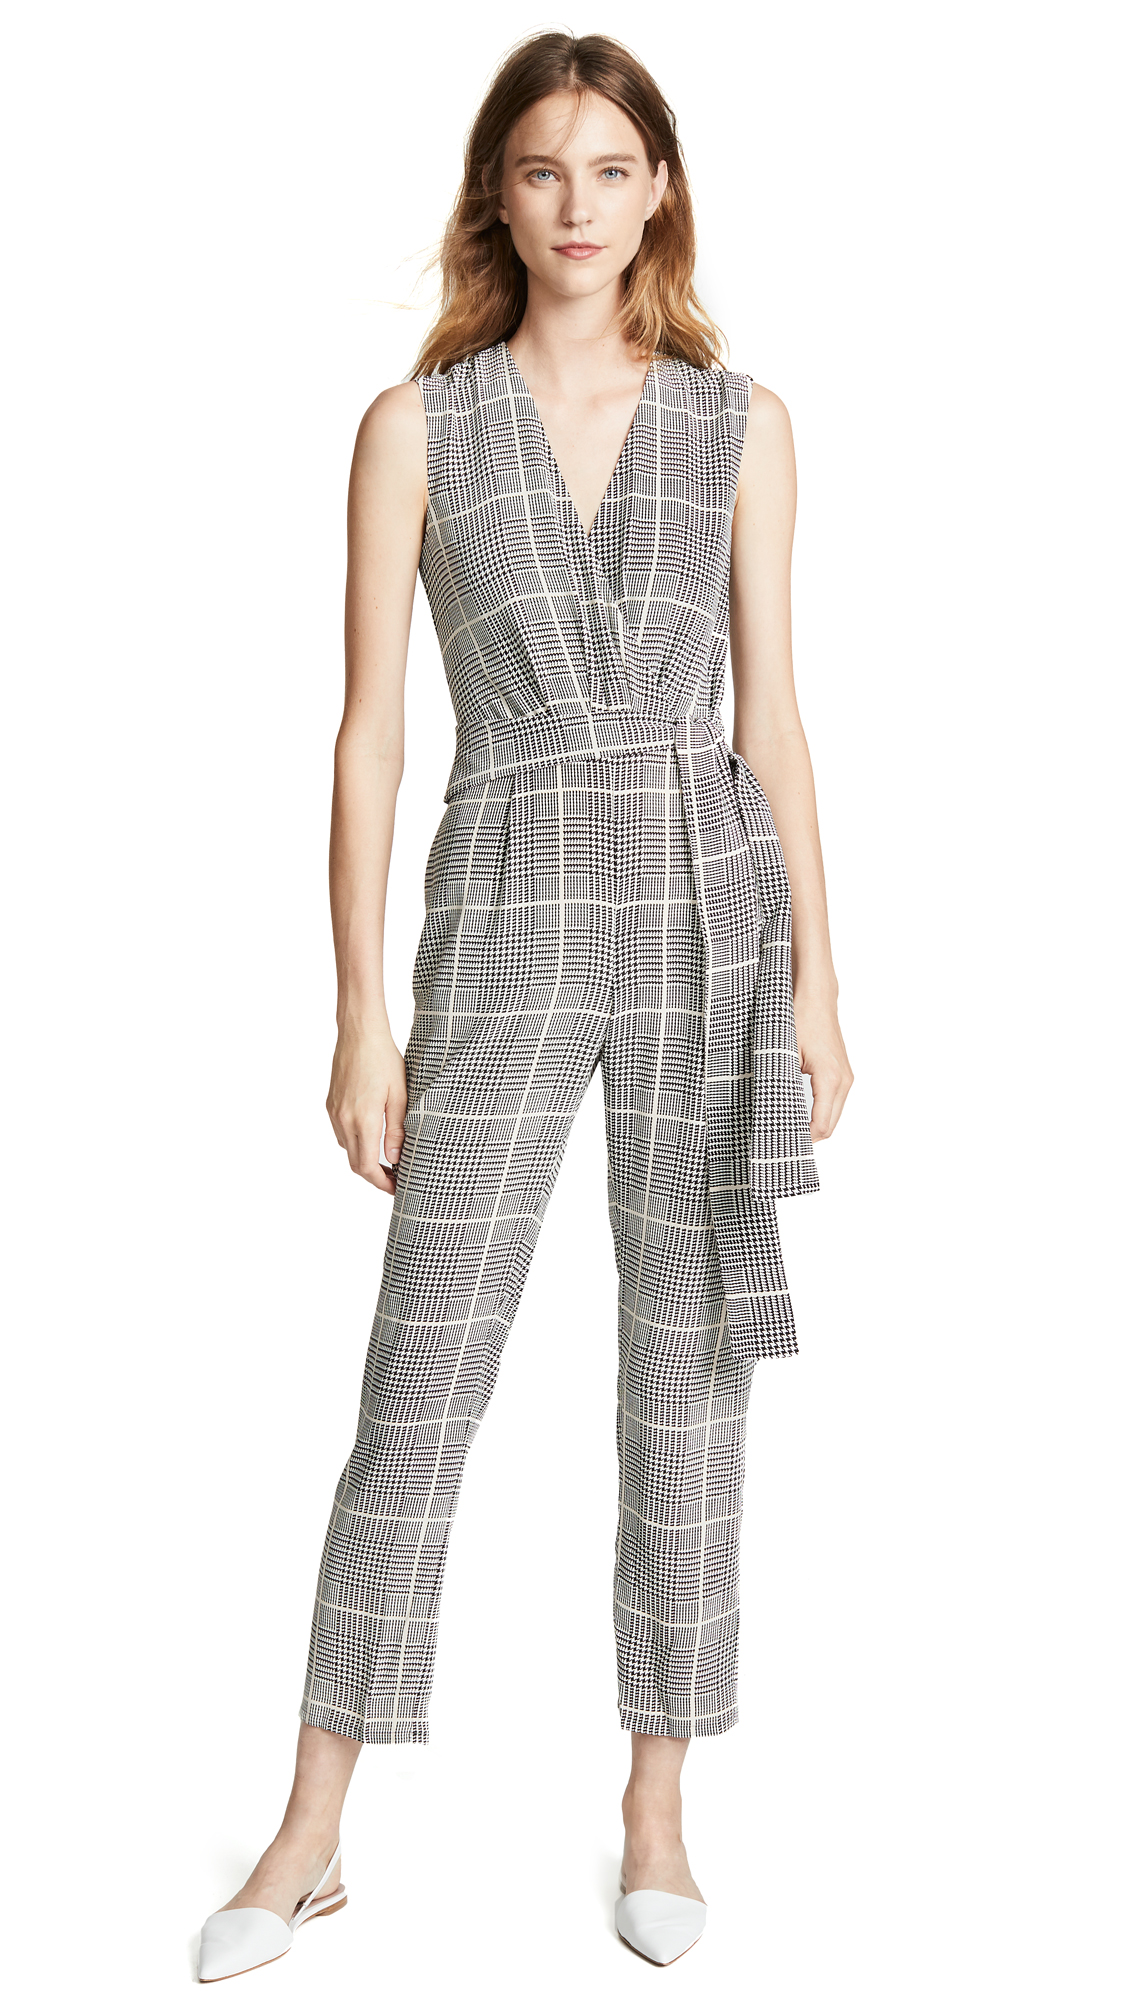 Julia Prince Of Wales Checked Silk-Crepe Jumpsuit in Black from L'AGENCE